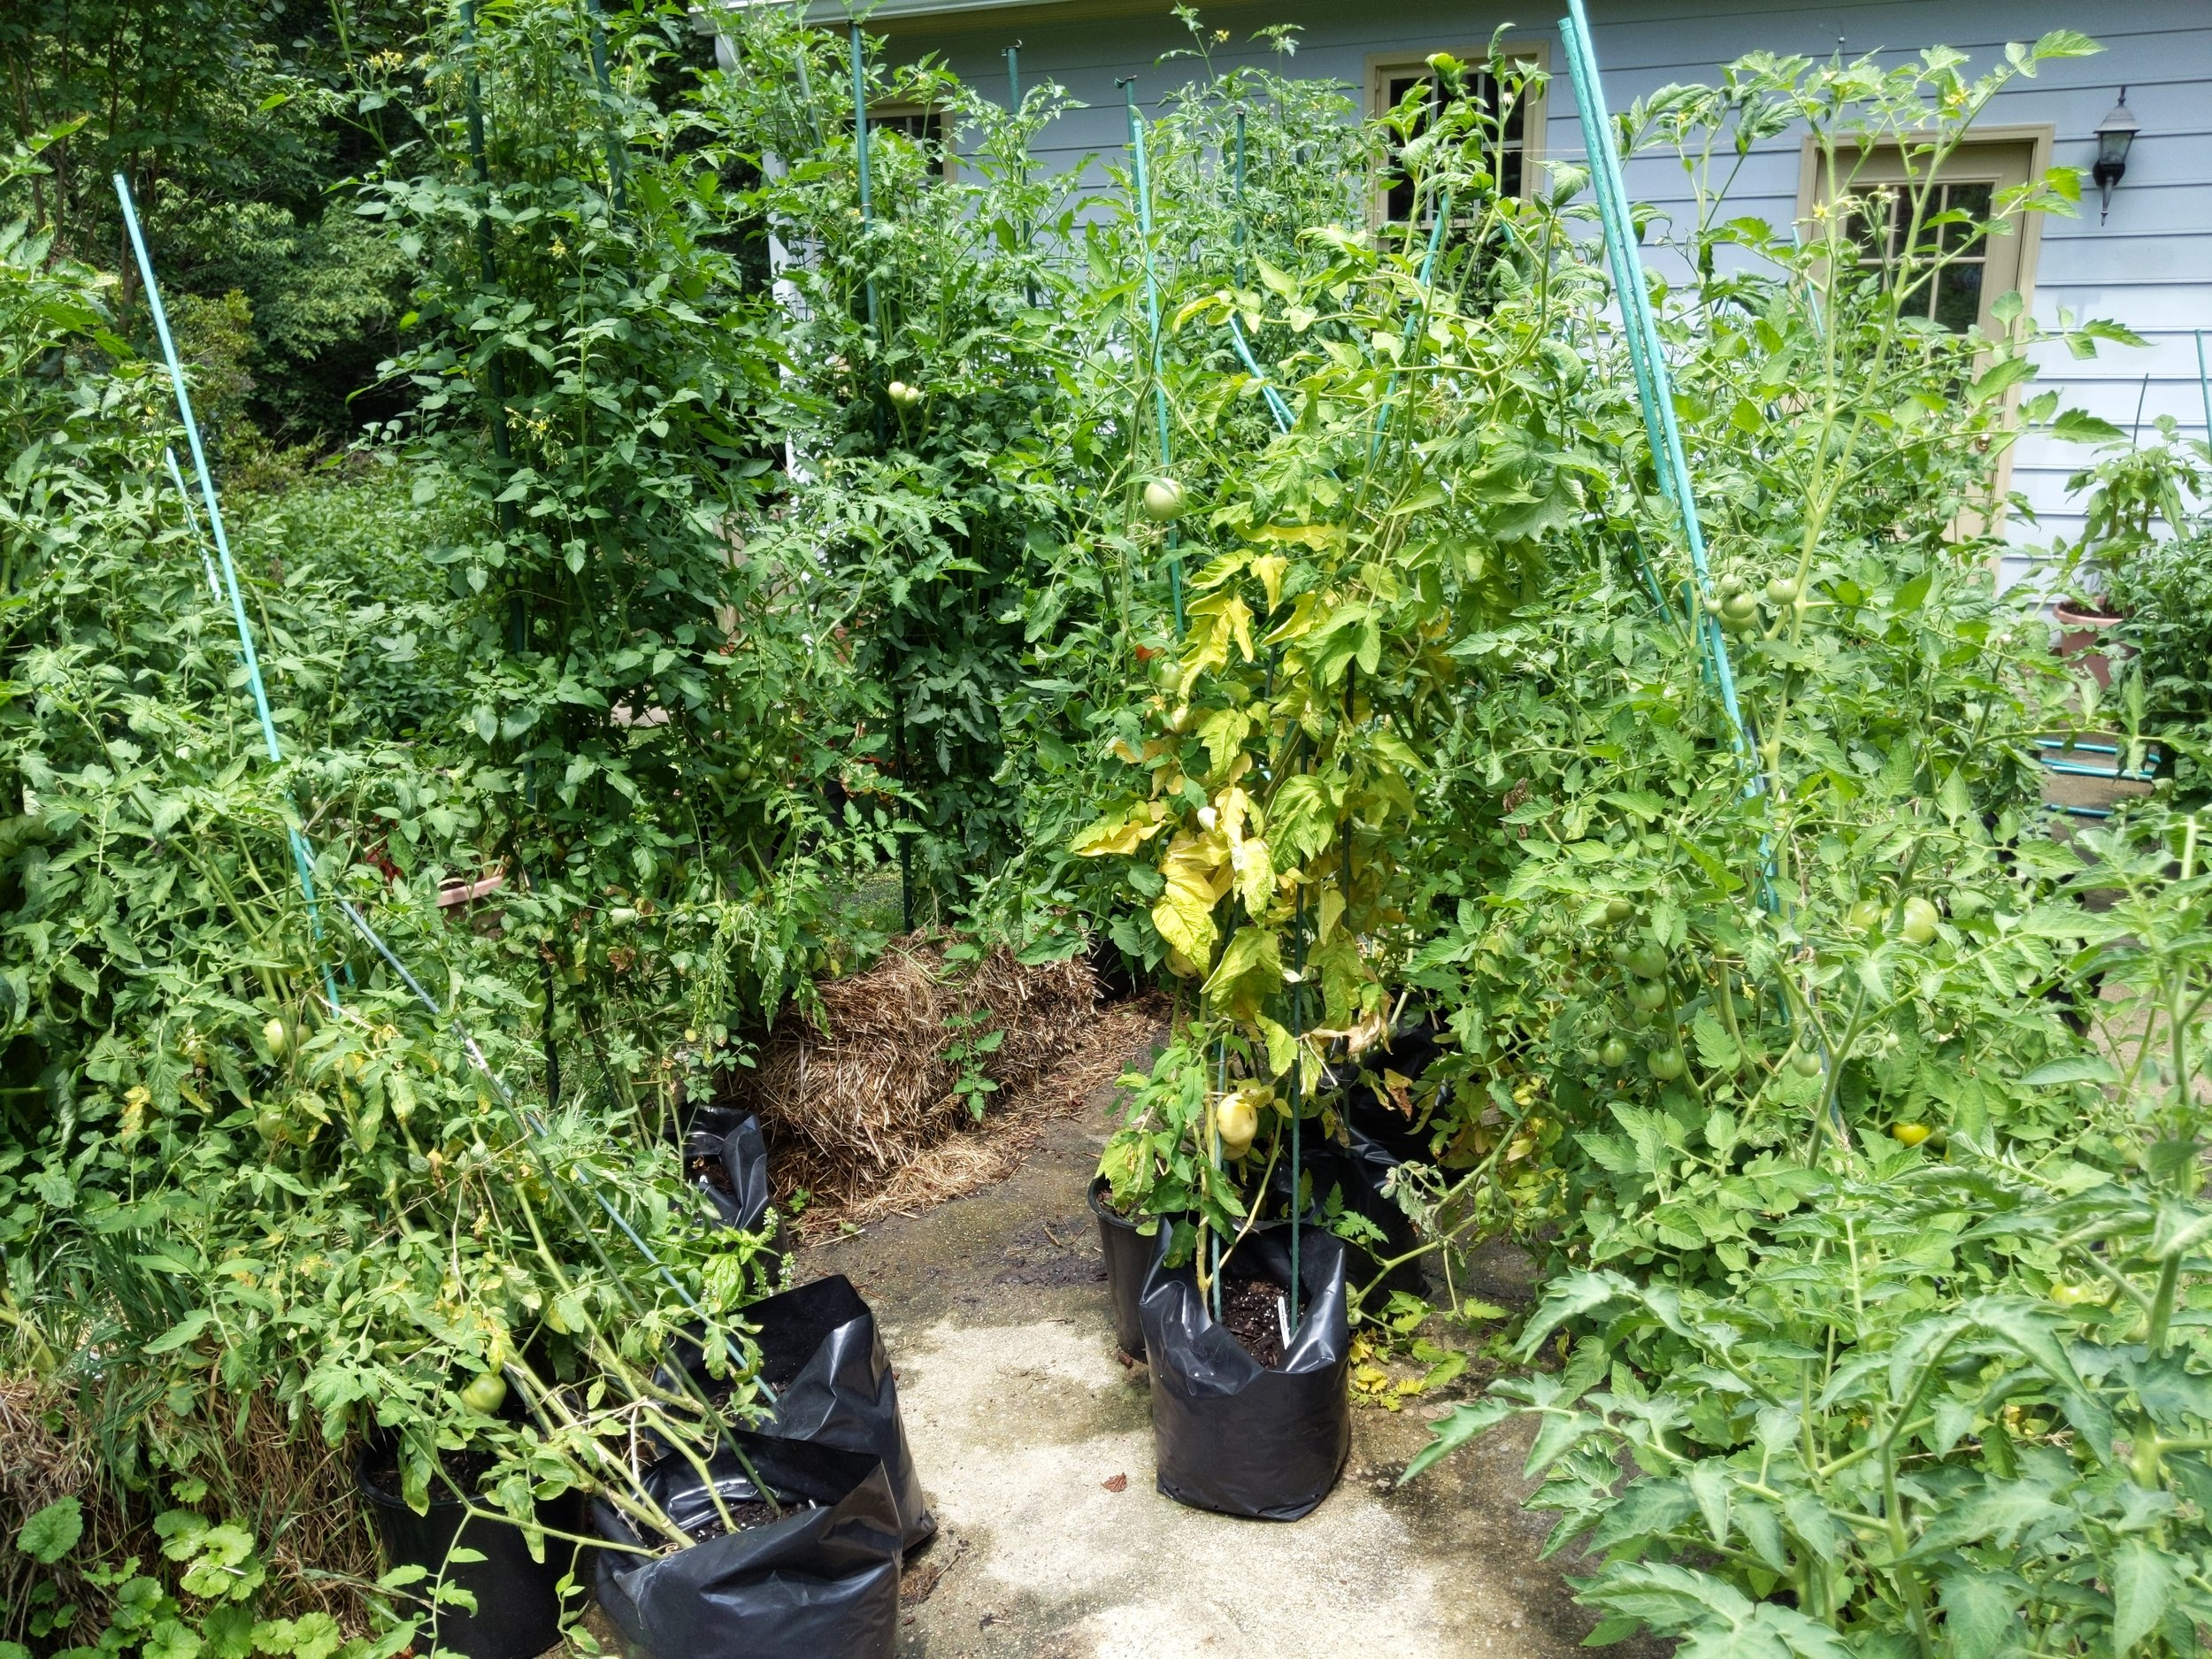 Area rearranged by weather (windy storm) and heavy plants laden with tomatoes that are too much for my support system